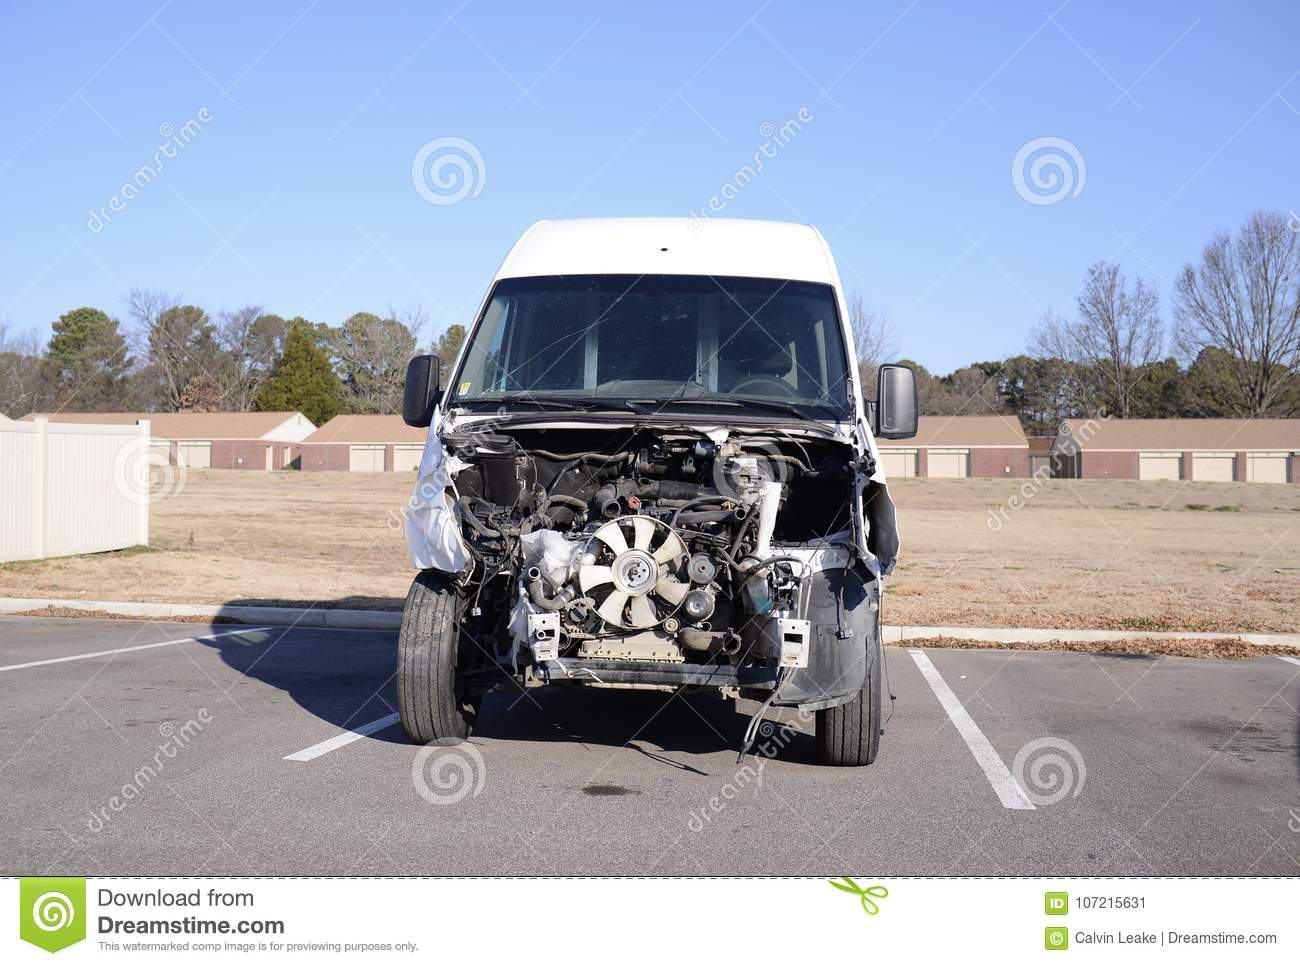 Engine Block Of A Car Exposed Stock Image Image Of Full Heap